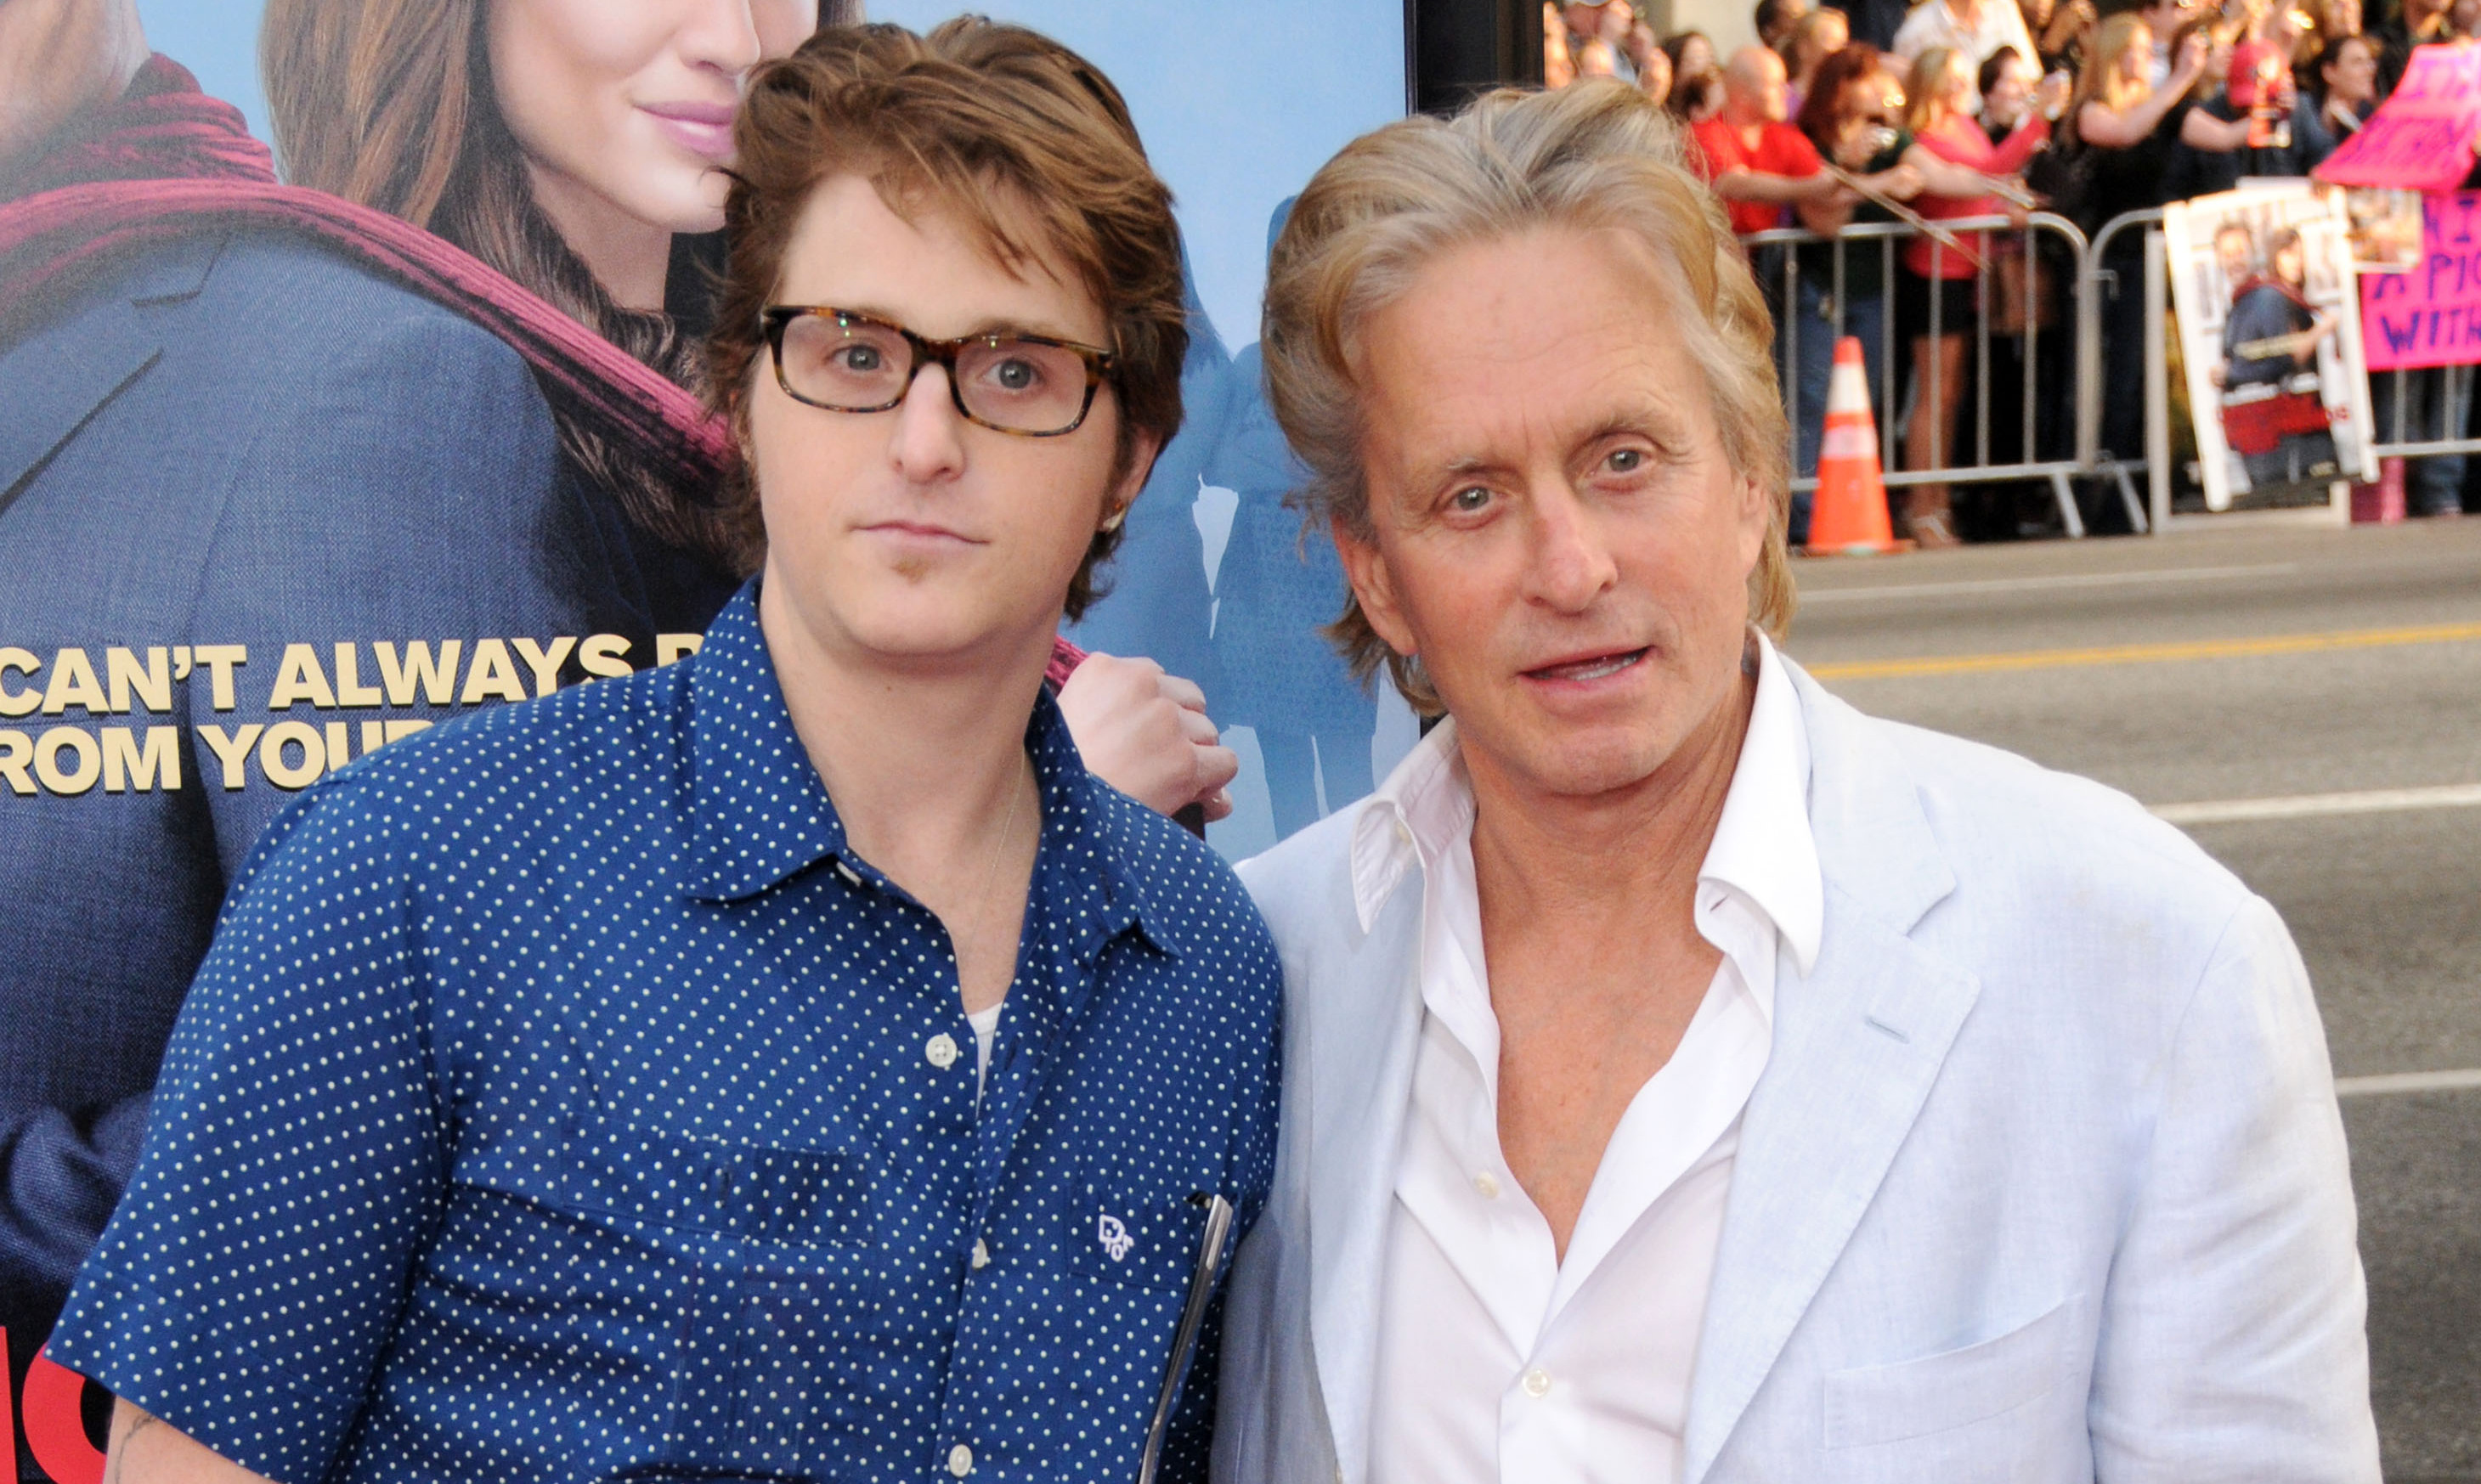 Michael Douglas and his son Cameron Douglas attend the 'Ghosts of Girlfriends Past' world premiere in 2009.